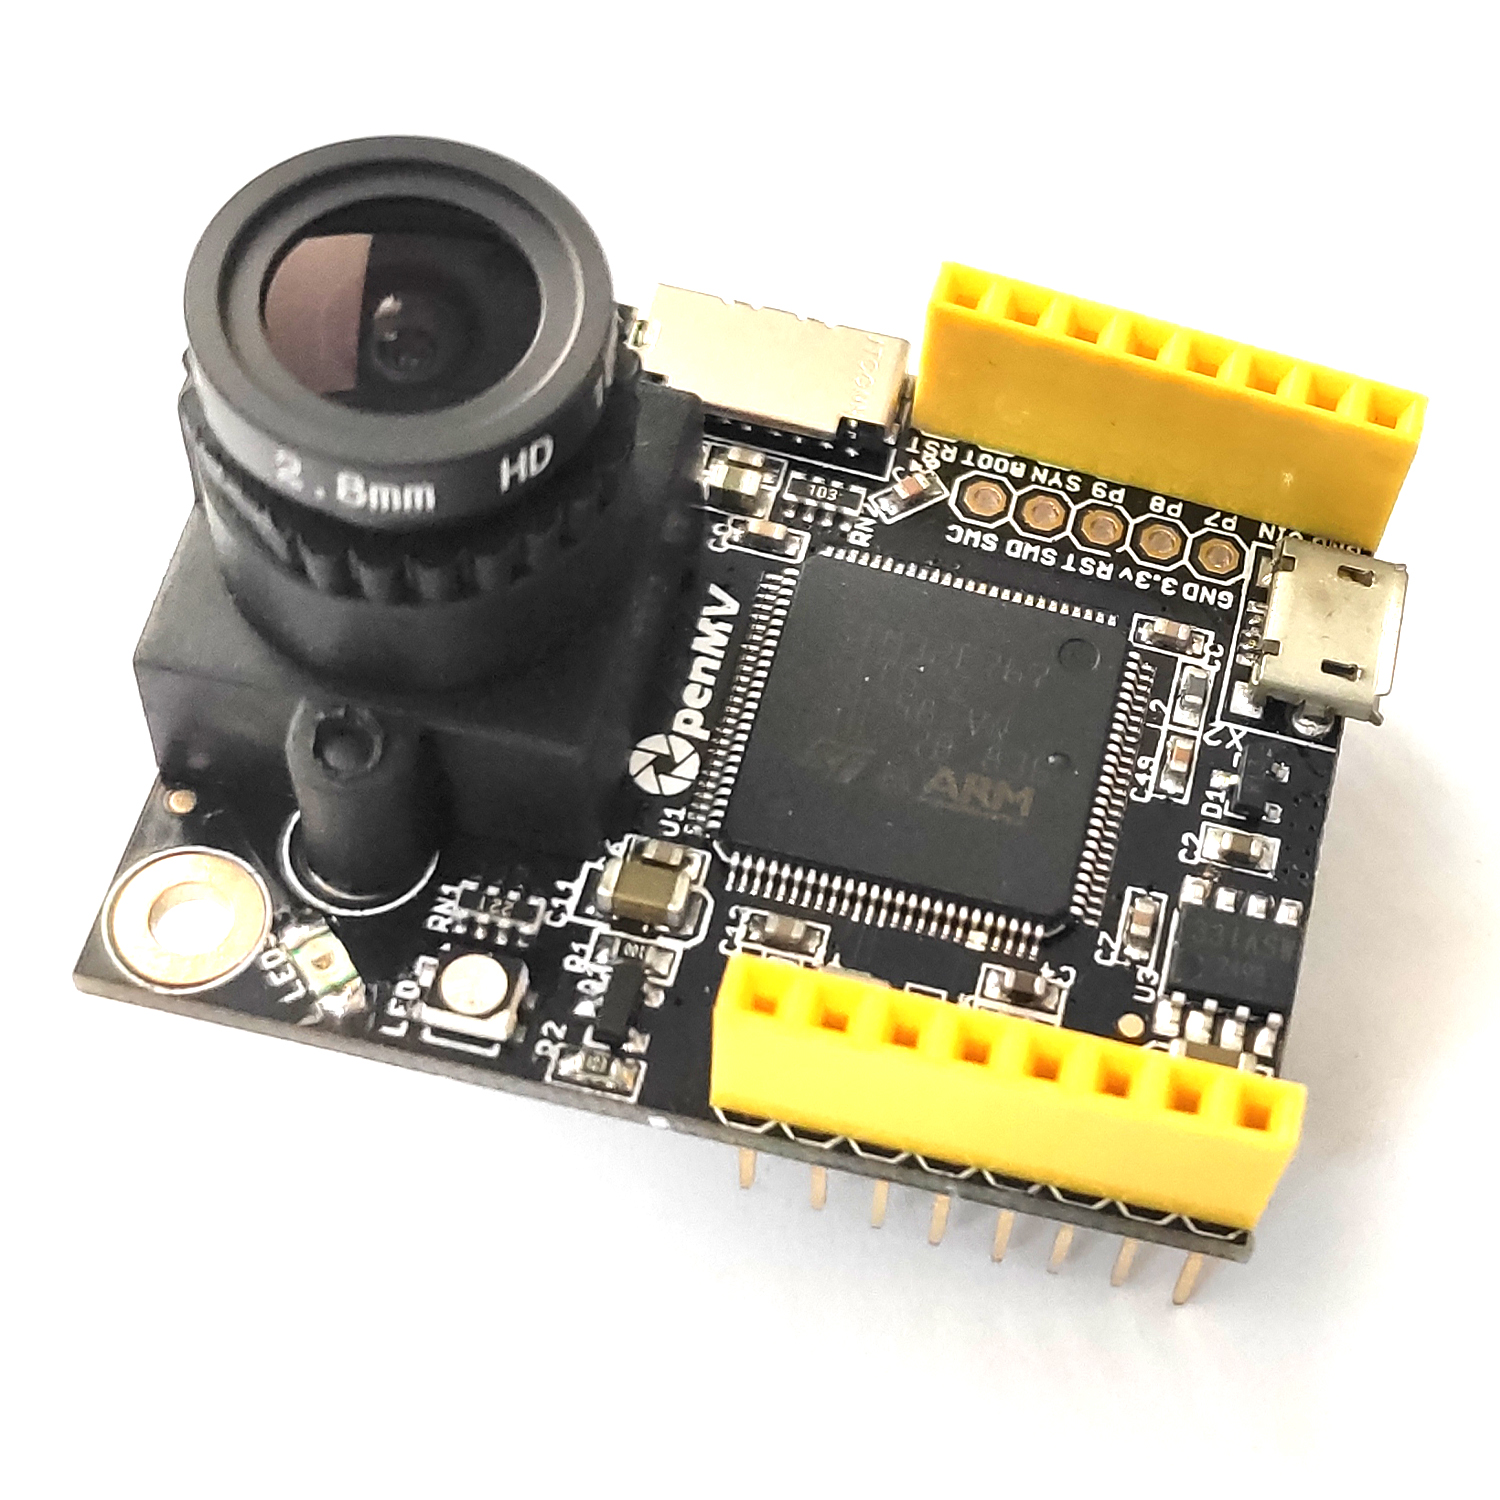 OpenMV3 Cam M7 Smart Camera Image Processing Color Recognition Visual Inspection